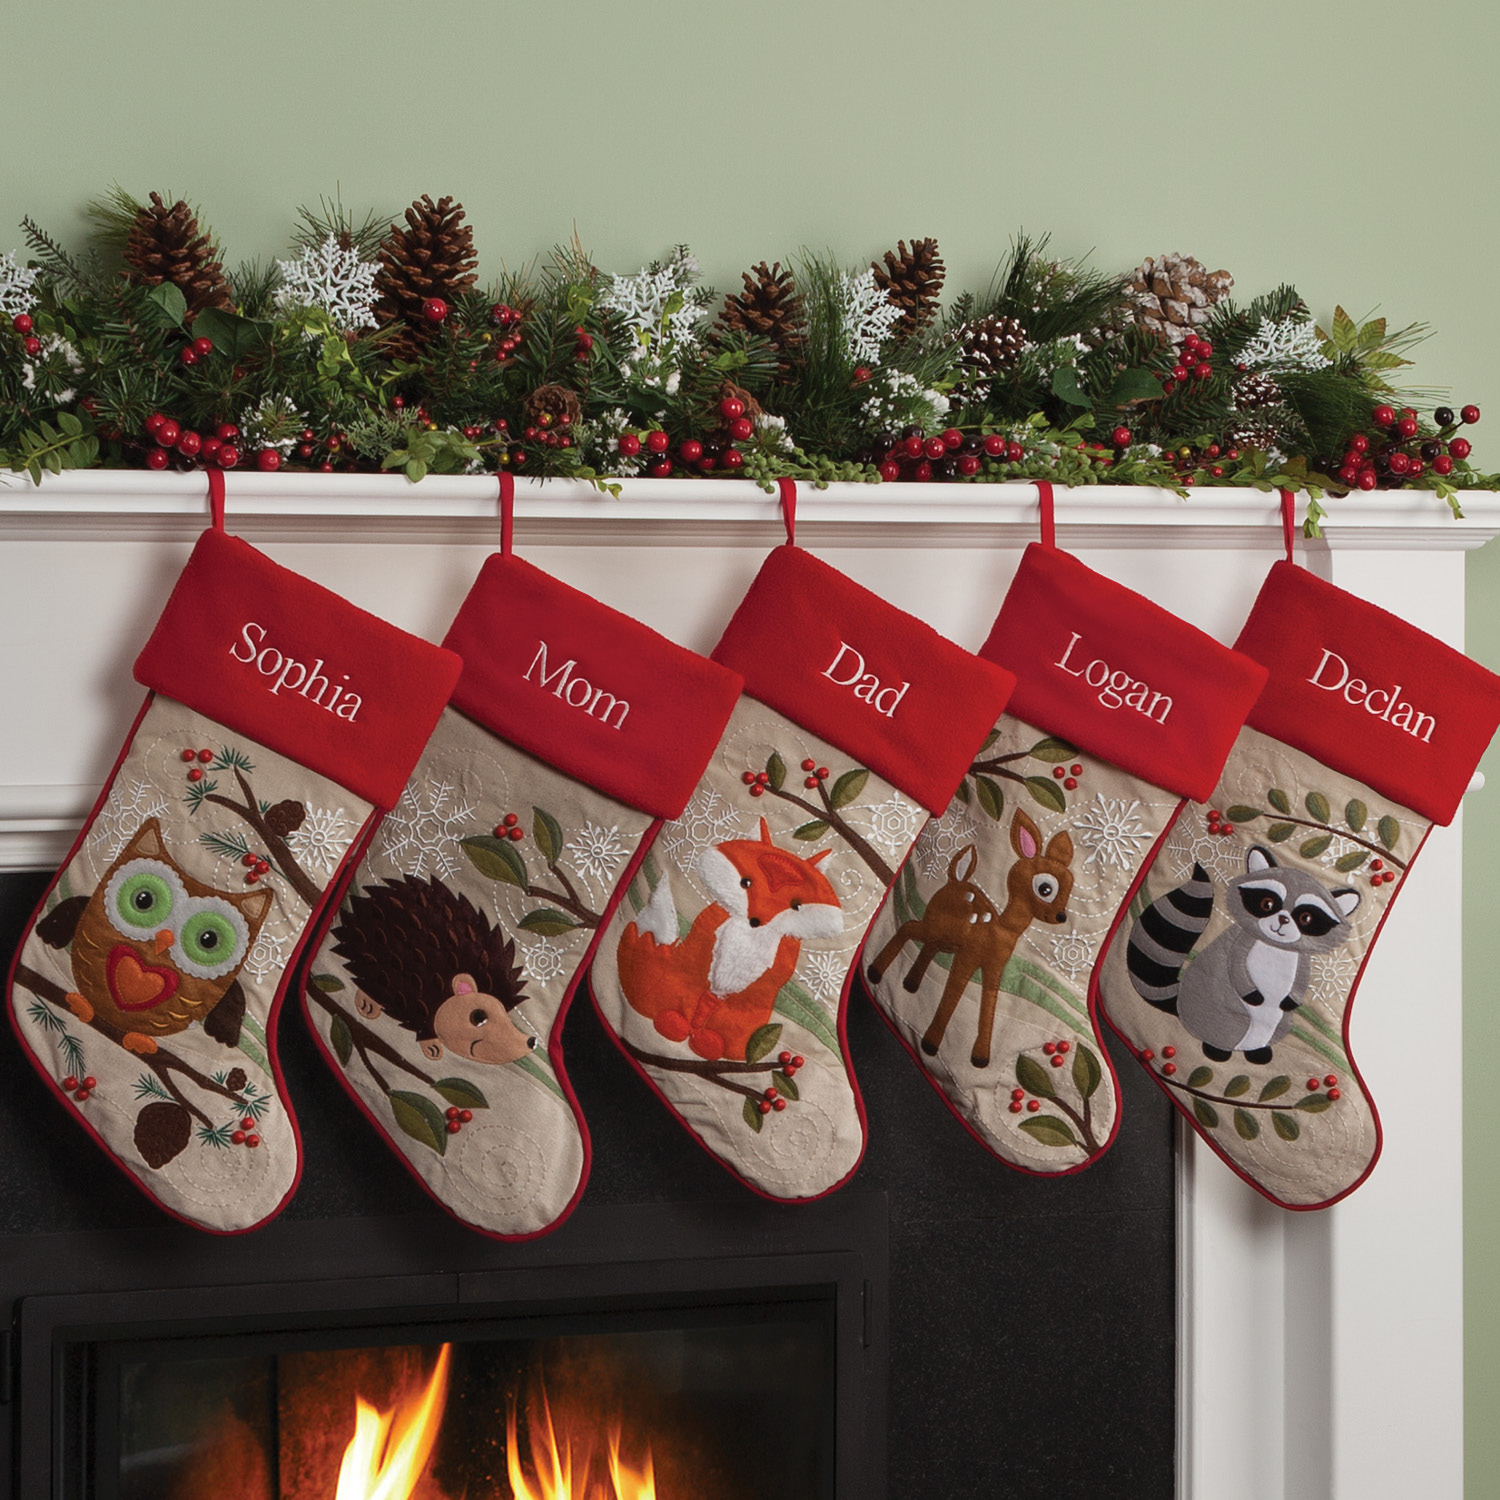 Christmas Stocking.Personalized Forest Friend Christmas Stocking Available In Different Animals